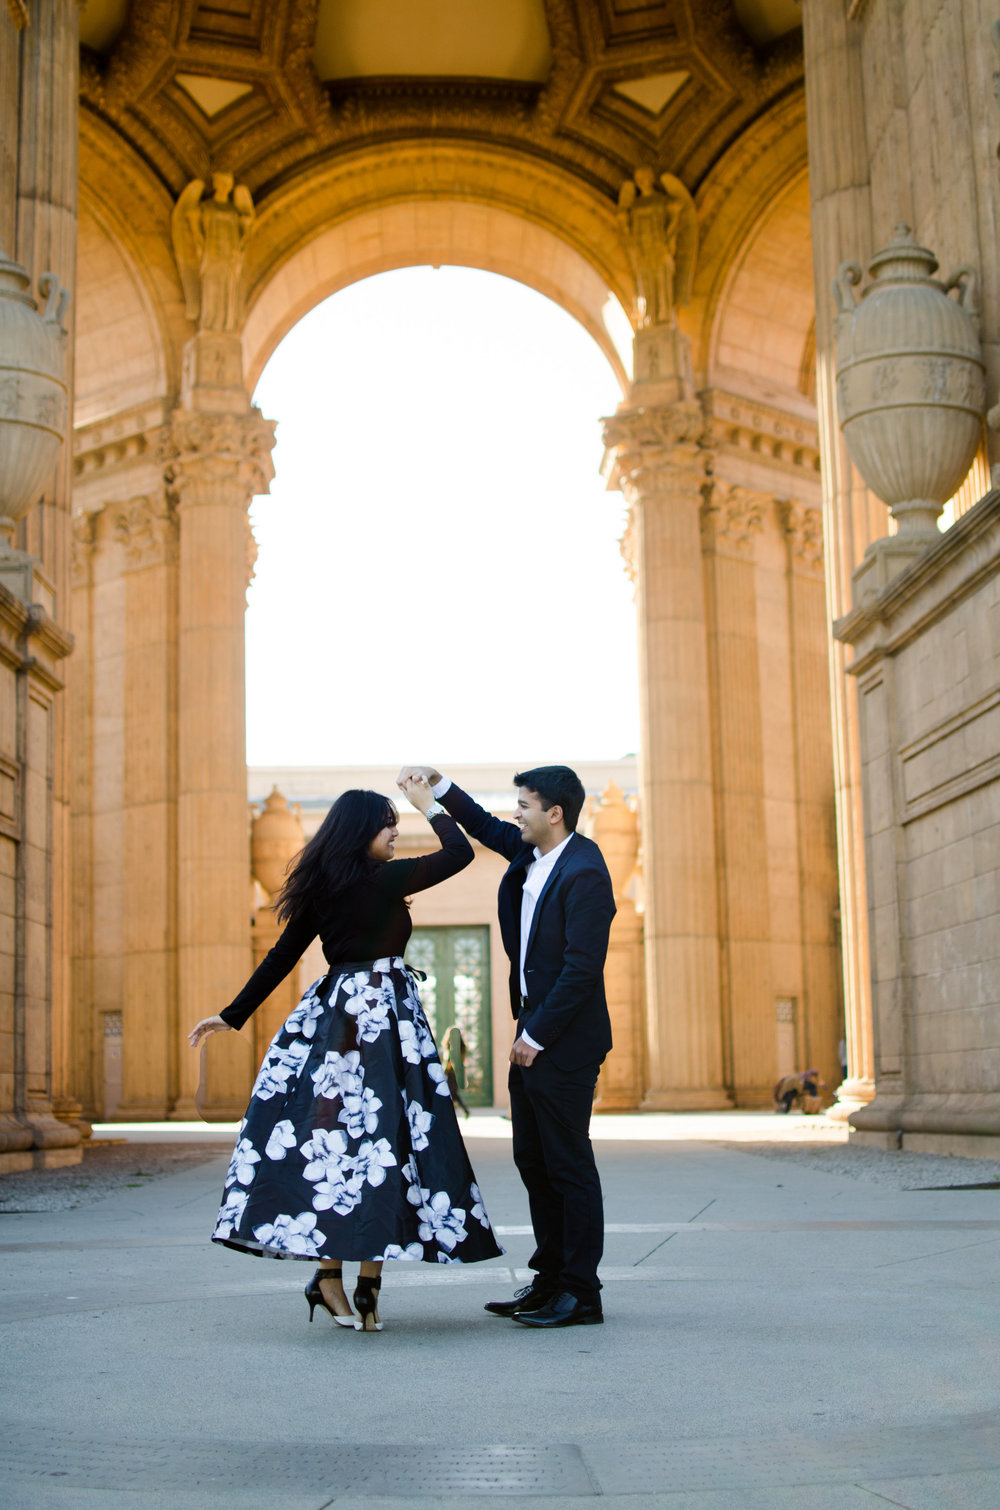 Abi & Shruthi Engagement   The Palace of Fine Arts // San Francisco, California